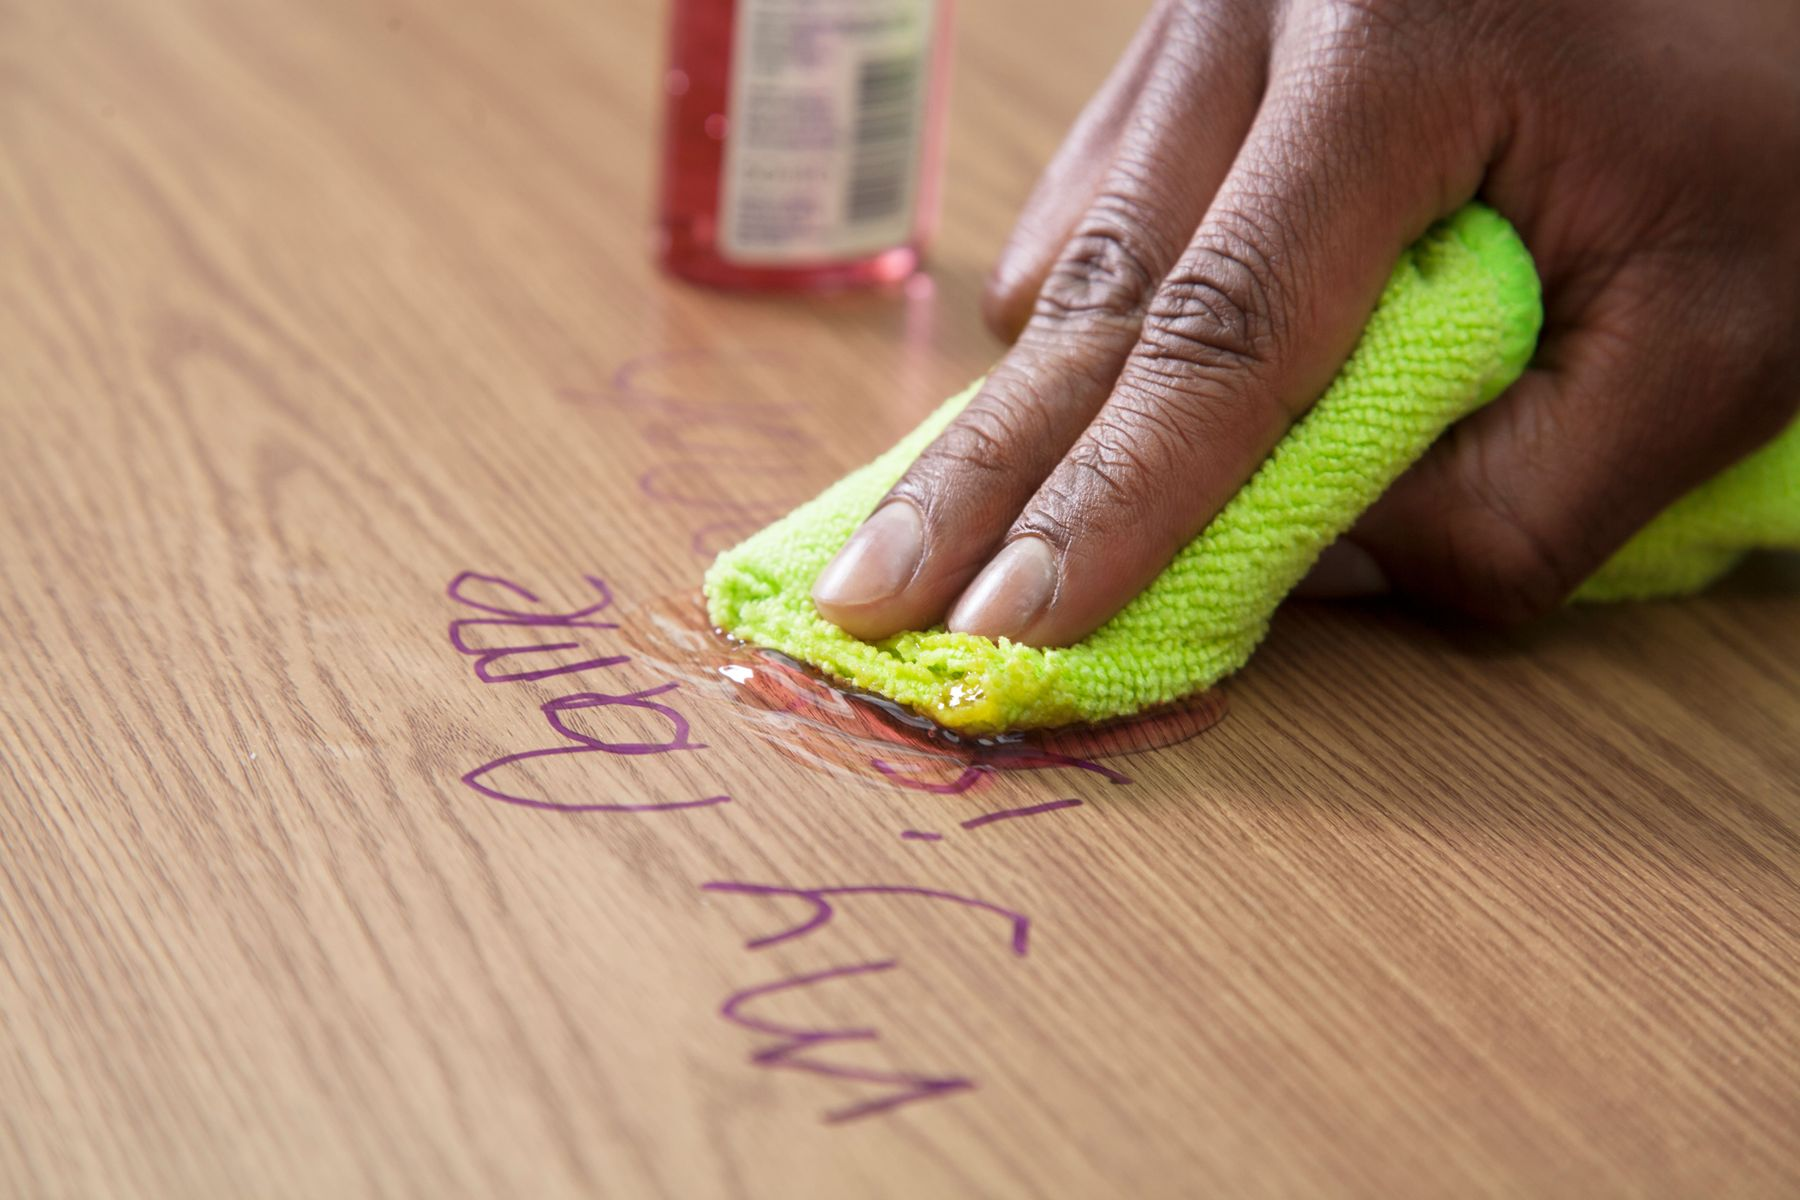 hand scrubbing pen marks to clean wooden surface